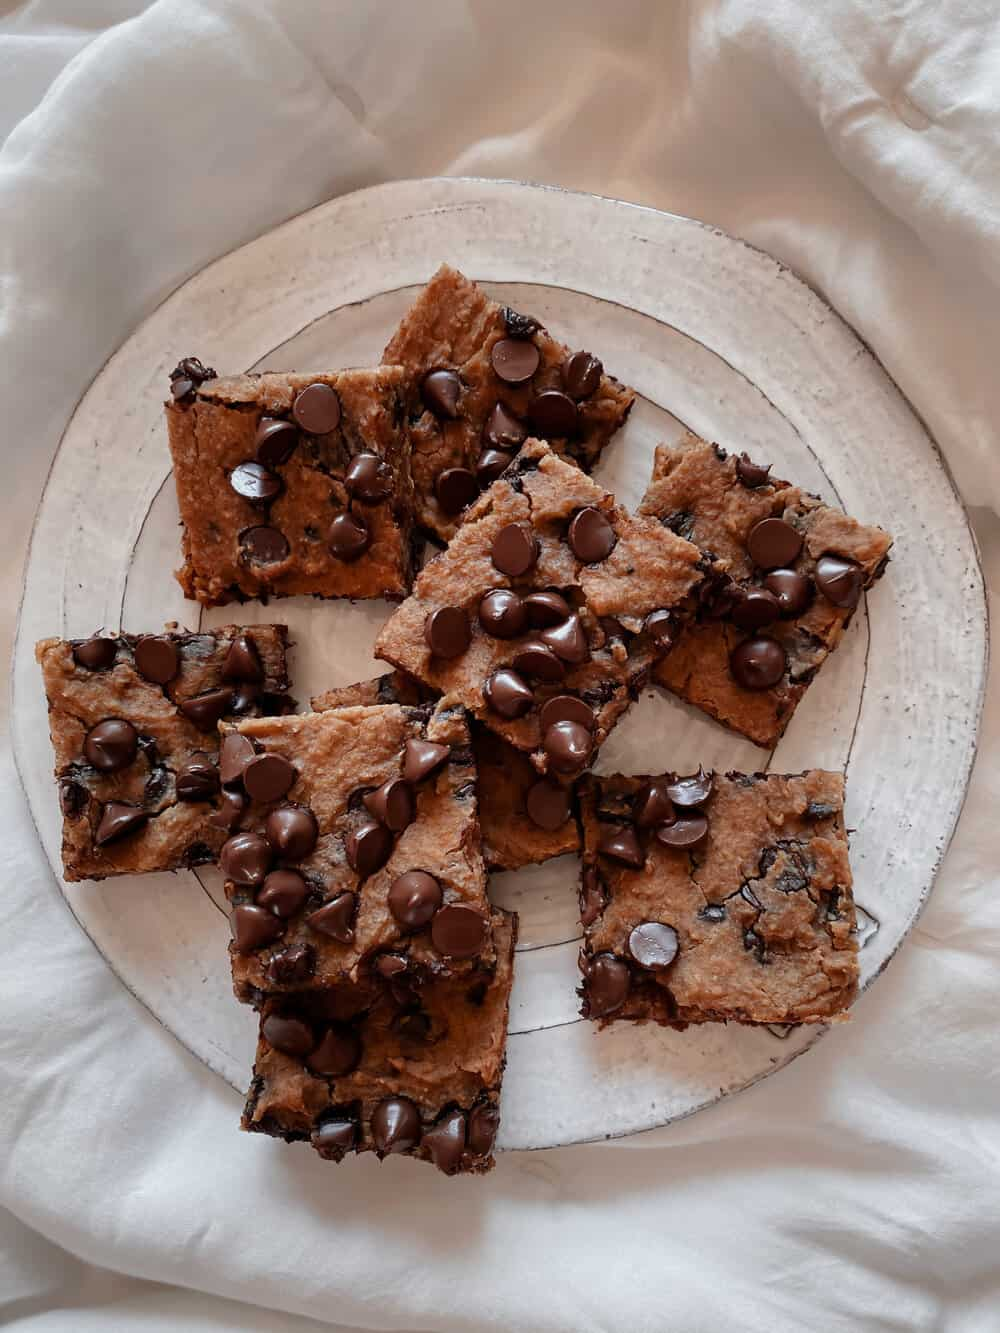 CHICKPEA PEANUT BUTTER BANANA BLONDIES - INGREDIENTS1/4 almond flour (or oat flour)1 (14.5 oz) can garbanzo beans, rinsed1 ripe banana1/3 cup maple syrup1/2 cup peanut butter1/2 teaspoon baking powder1/2 teaspoon baking soda3/4 teaspoon cinnamon3/4 cup dairy free chocolate chips